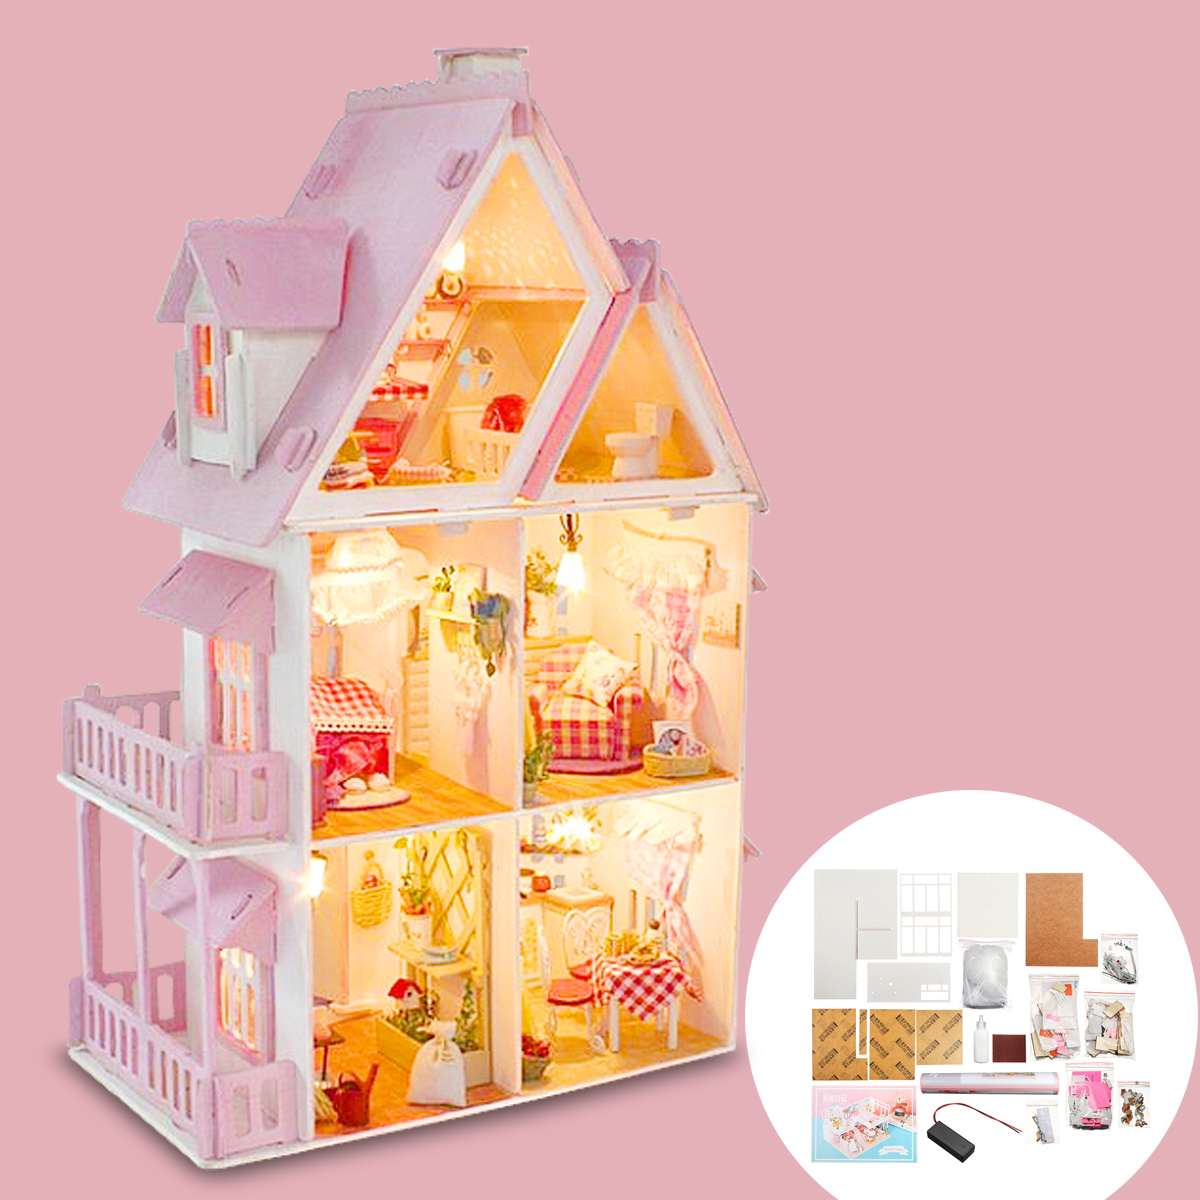 DIY Wooden Dolls House Miniature Box Handmade LED Light Miniature Dollhouse Furniture Doll House Accessories For Children Gift